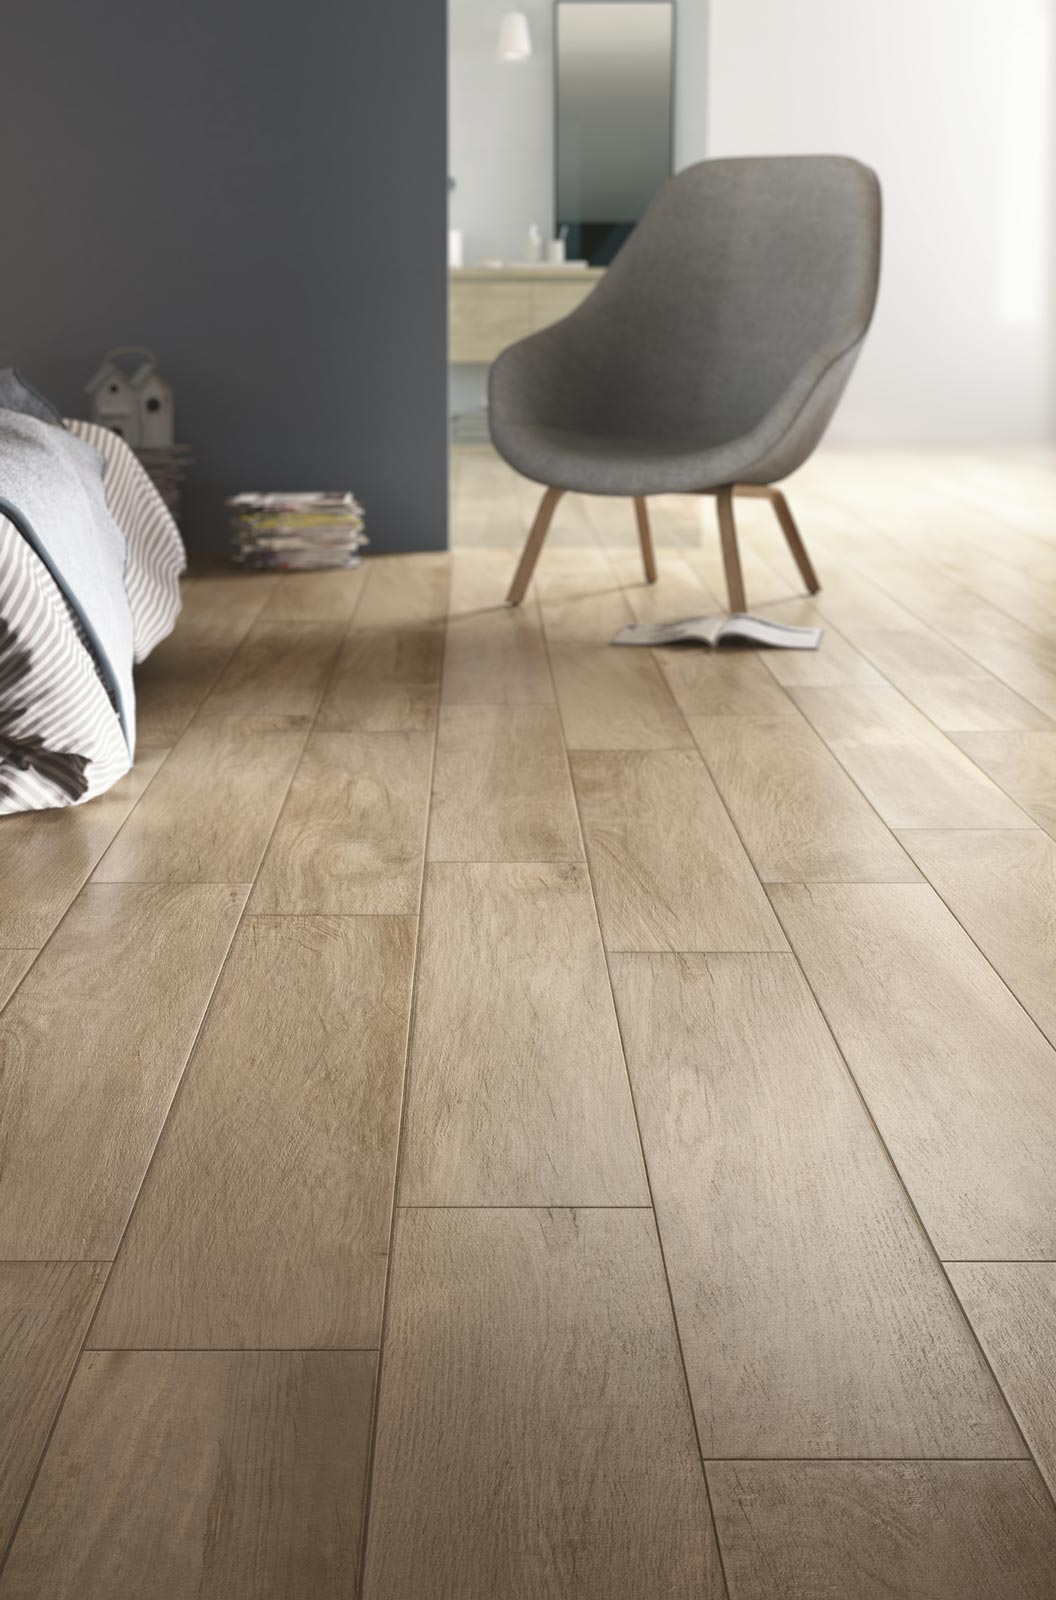 Woodplace wood effect porcelain stoneware ragno for Carrelage imitation parquet